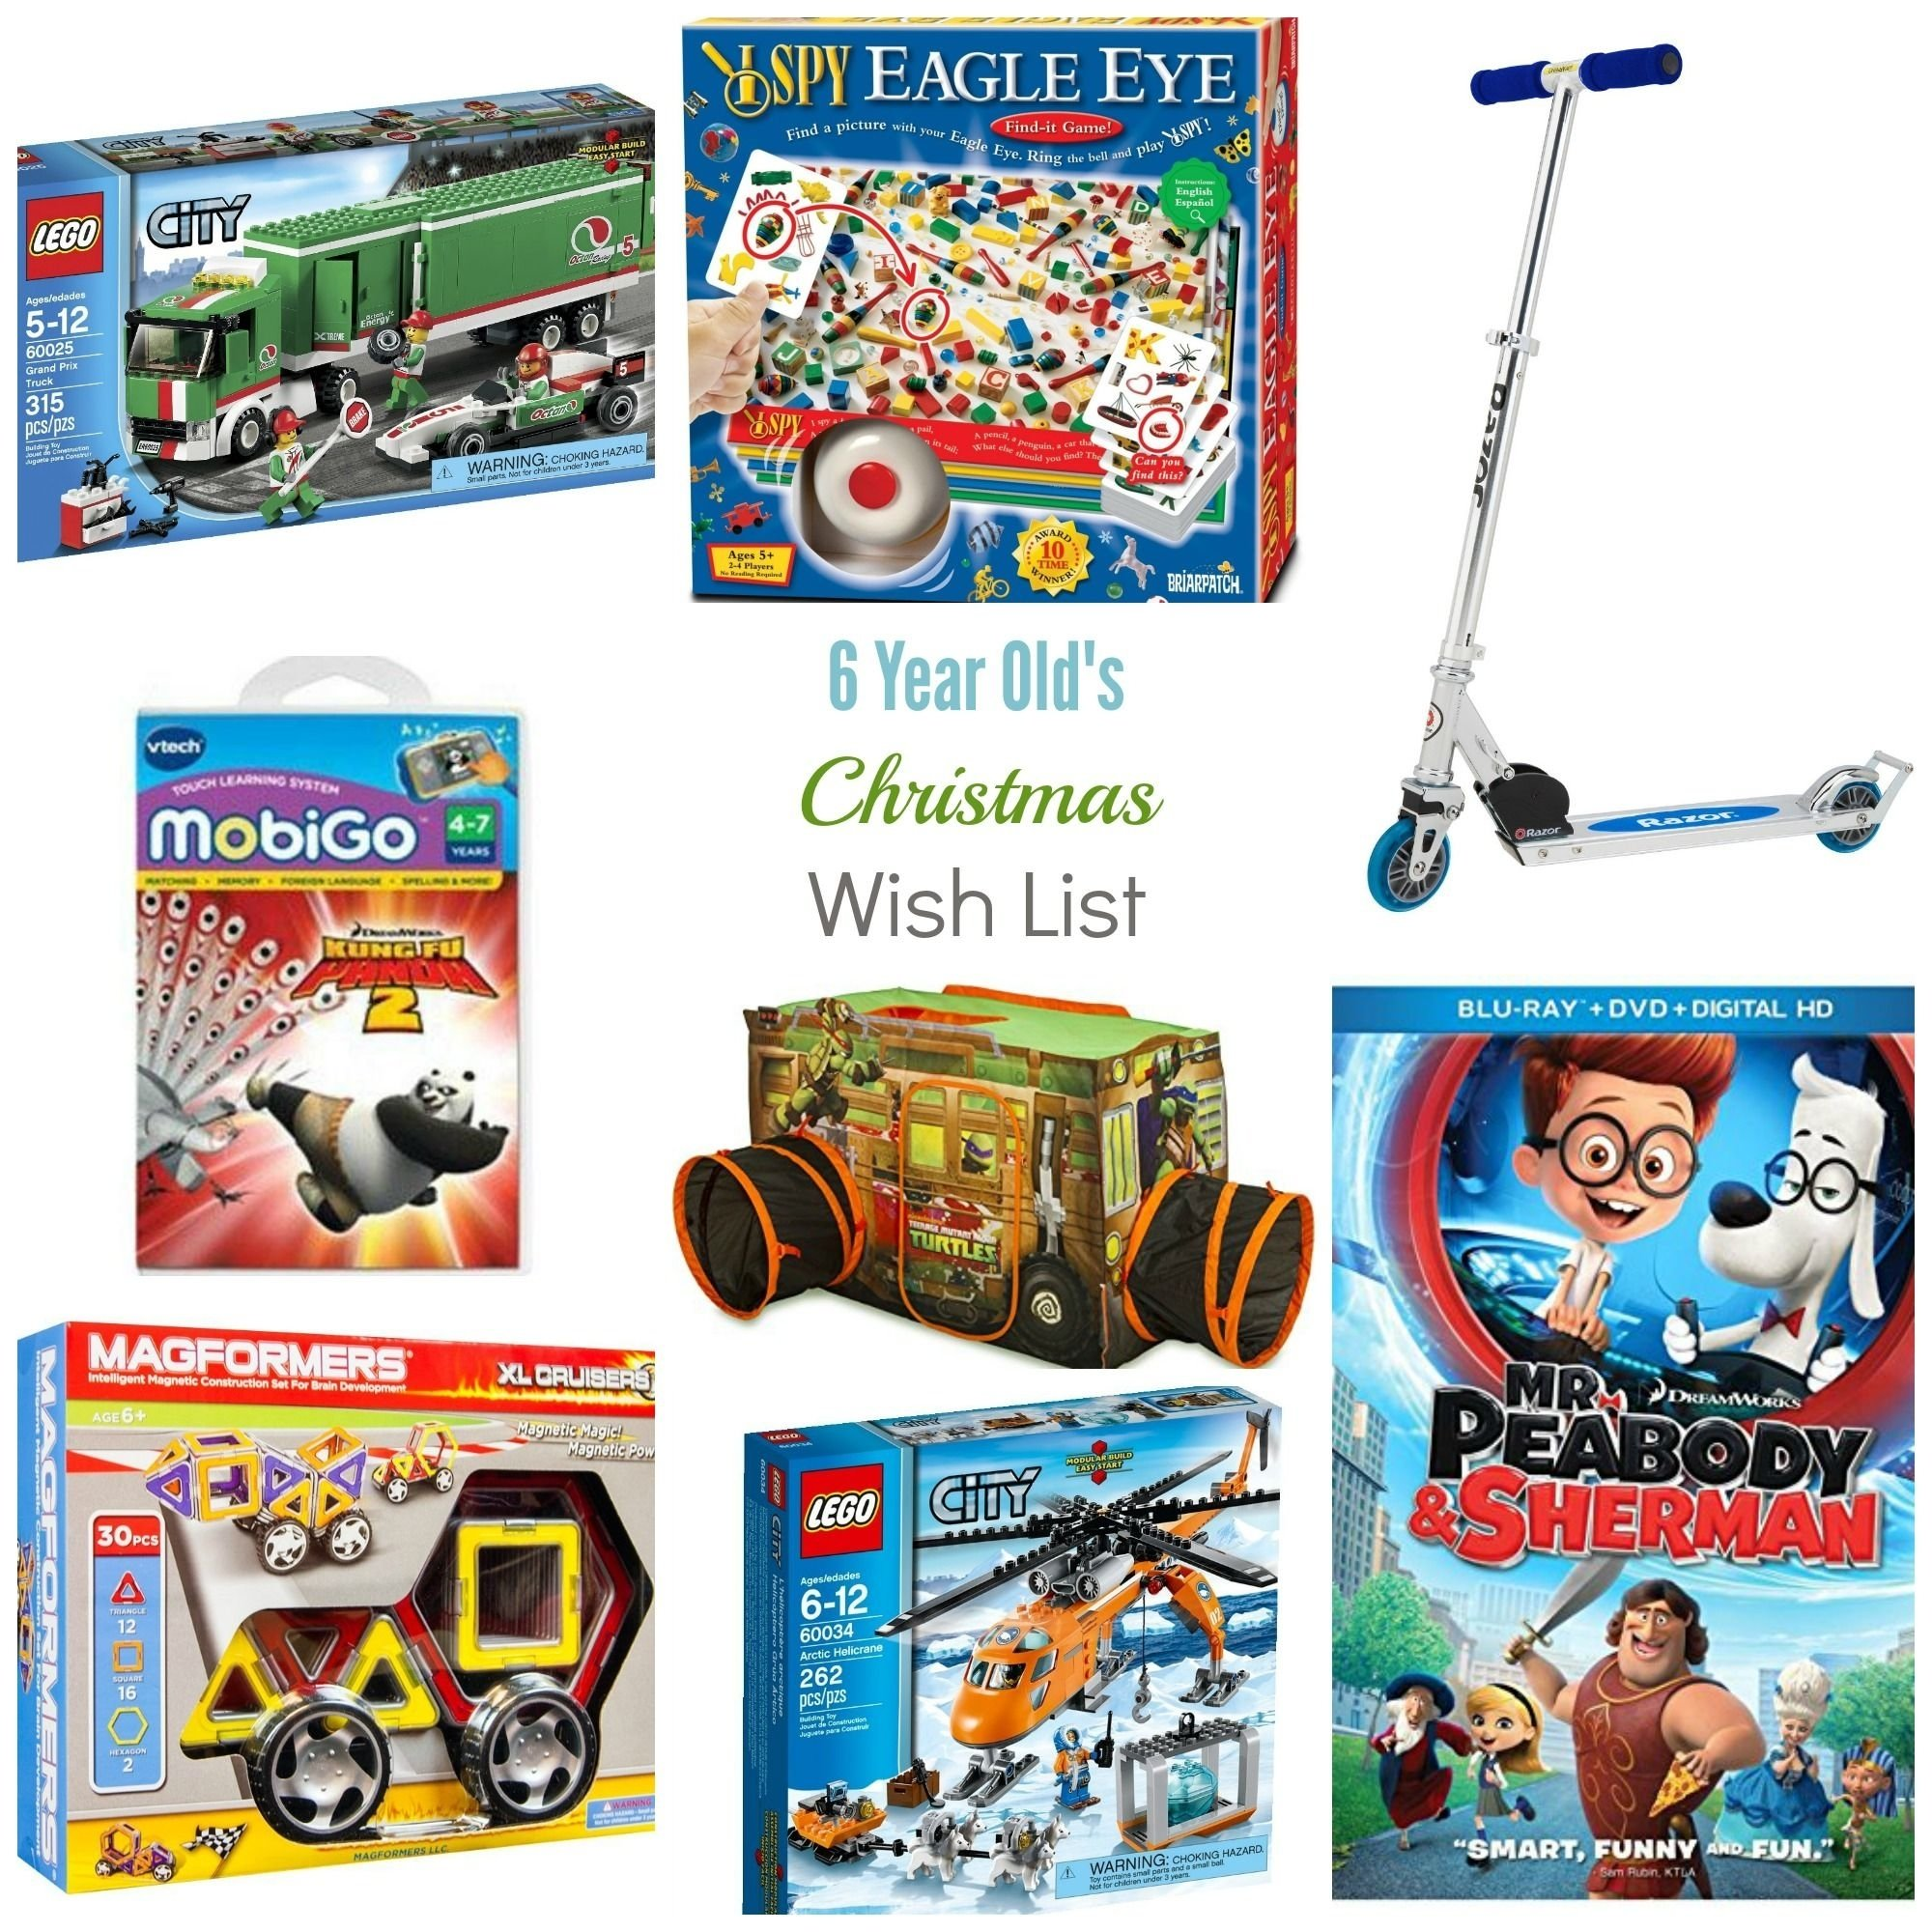 10 Awesome Gift Ideas For 7 Year Old Boys christmas wish list 6 year old boy legos ninja turtles and gift 15 2020